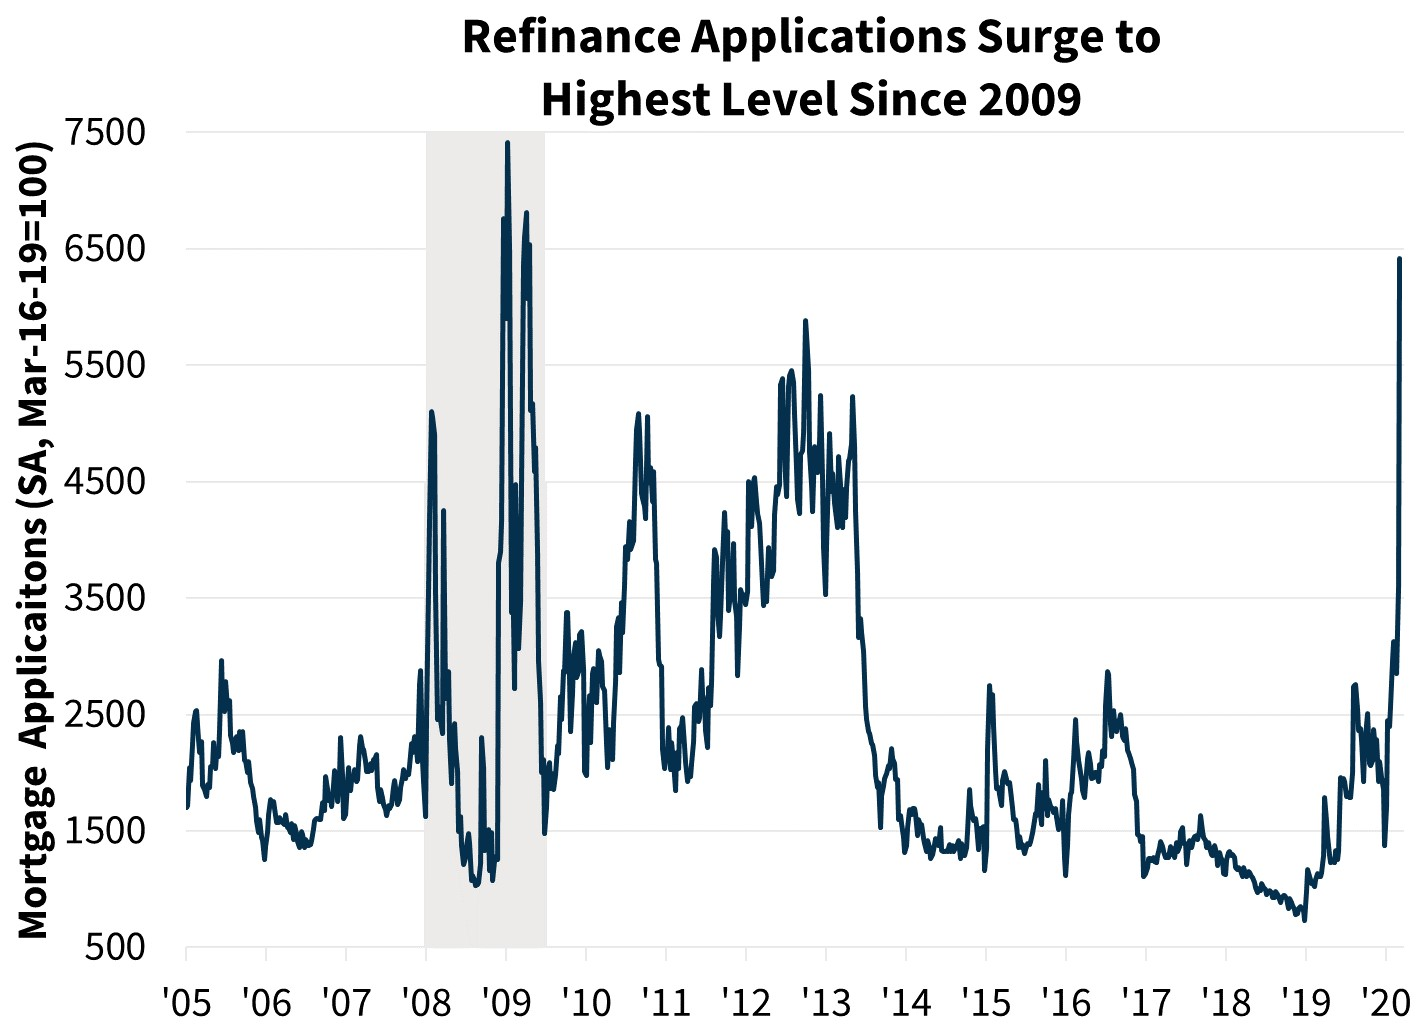 Refinance Applications Surge to Highest Level Since 2009